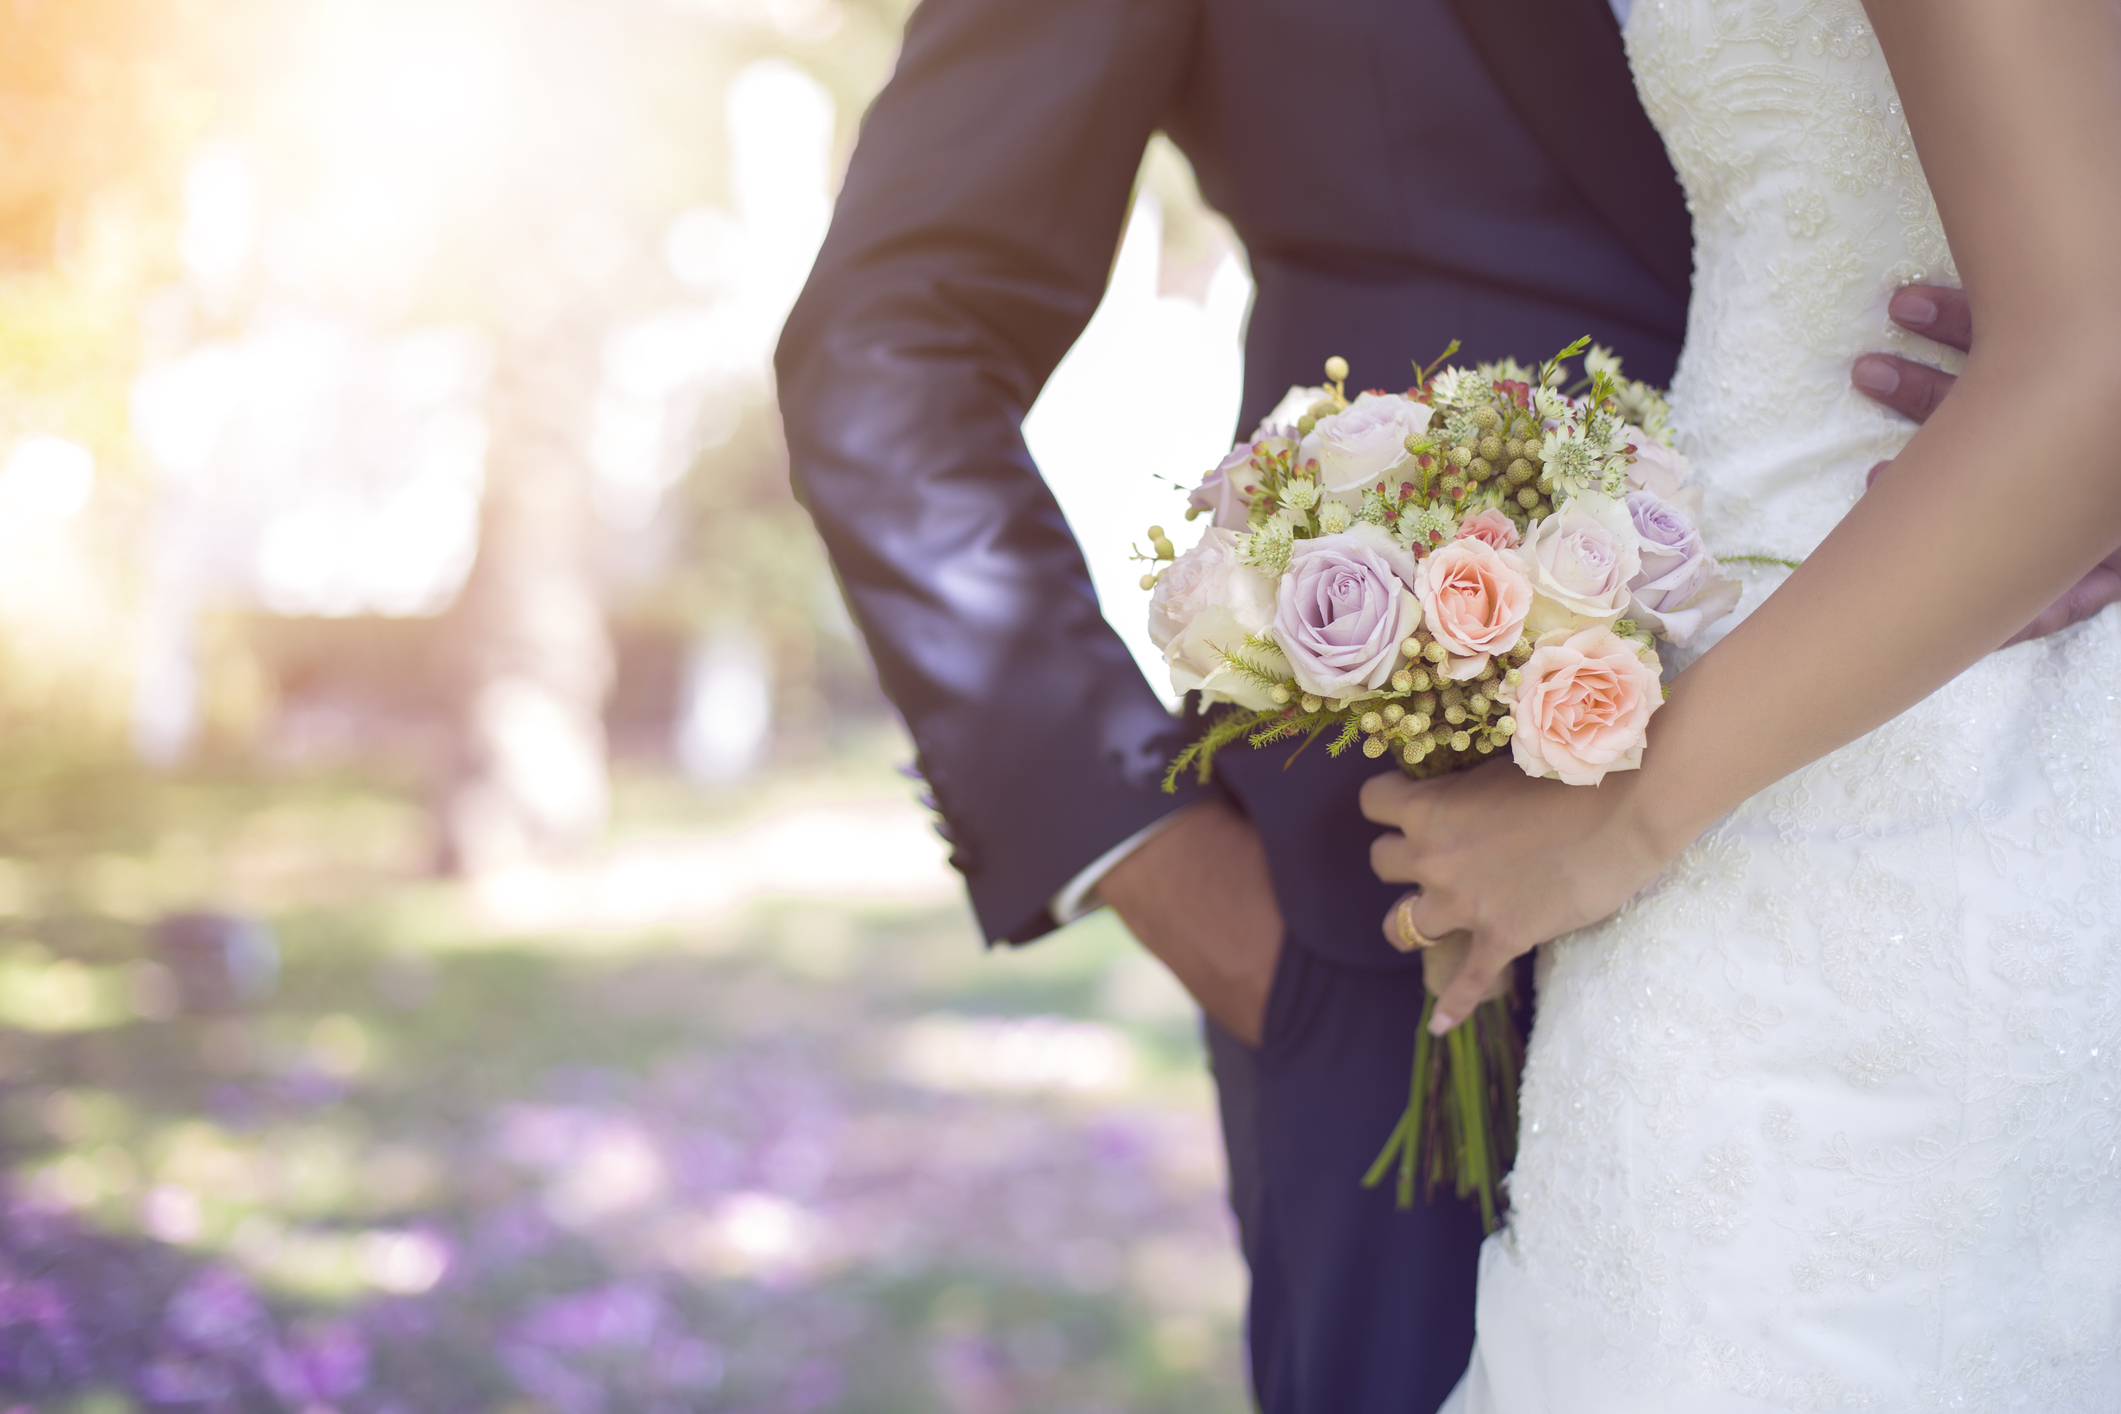 Marriage may help protect against stroke and heart disease.